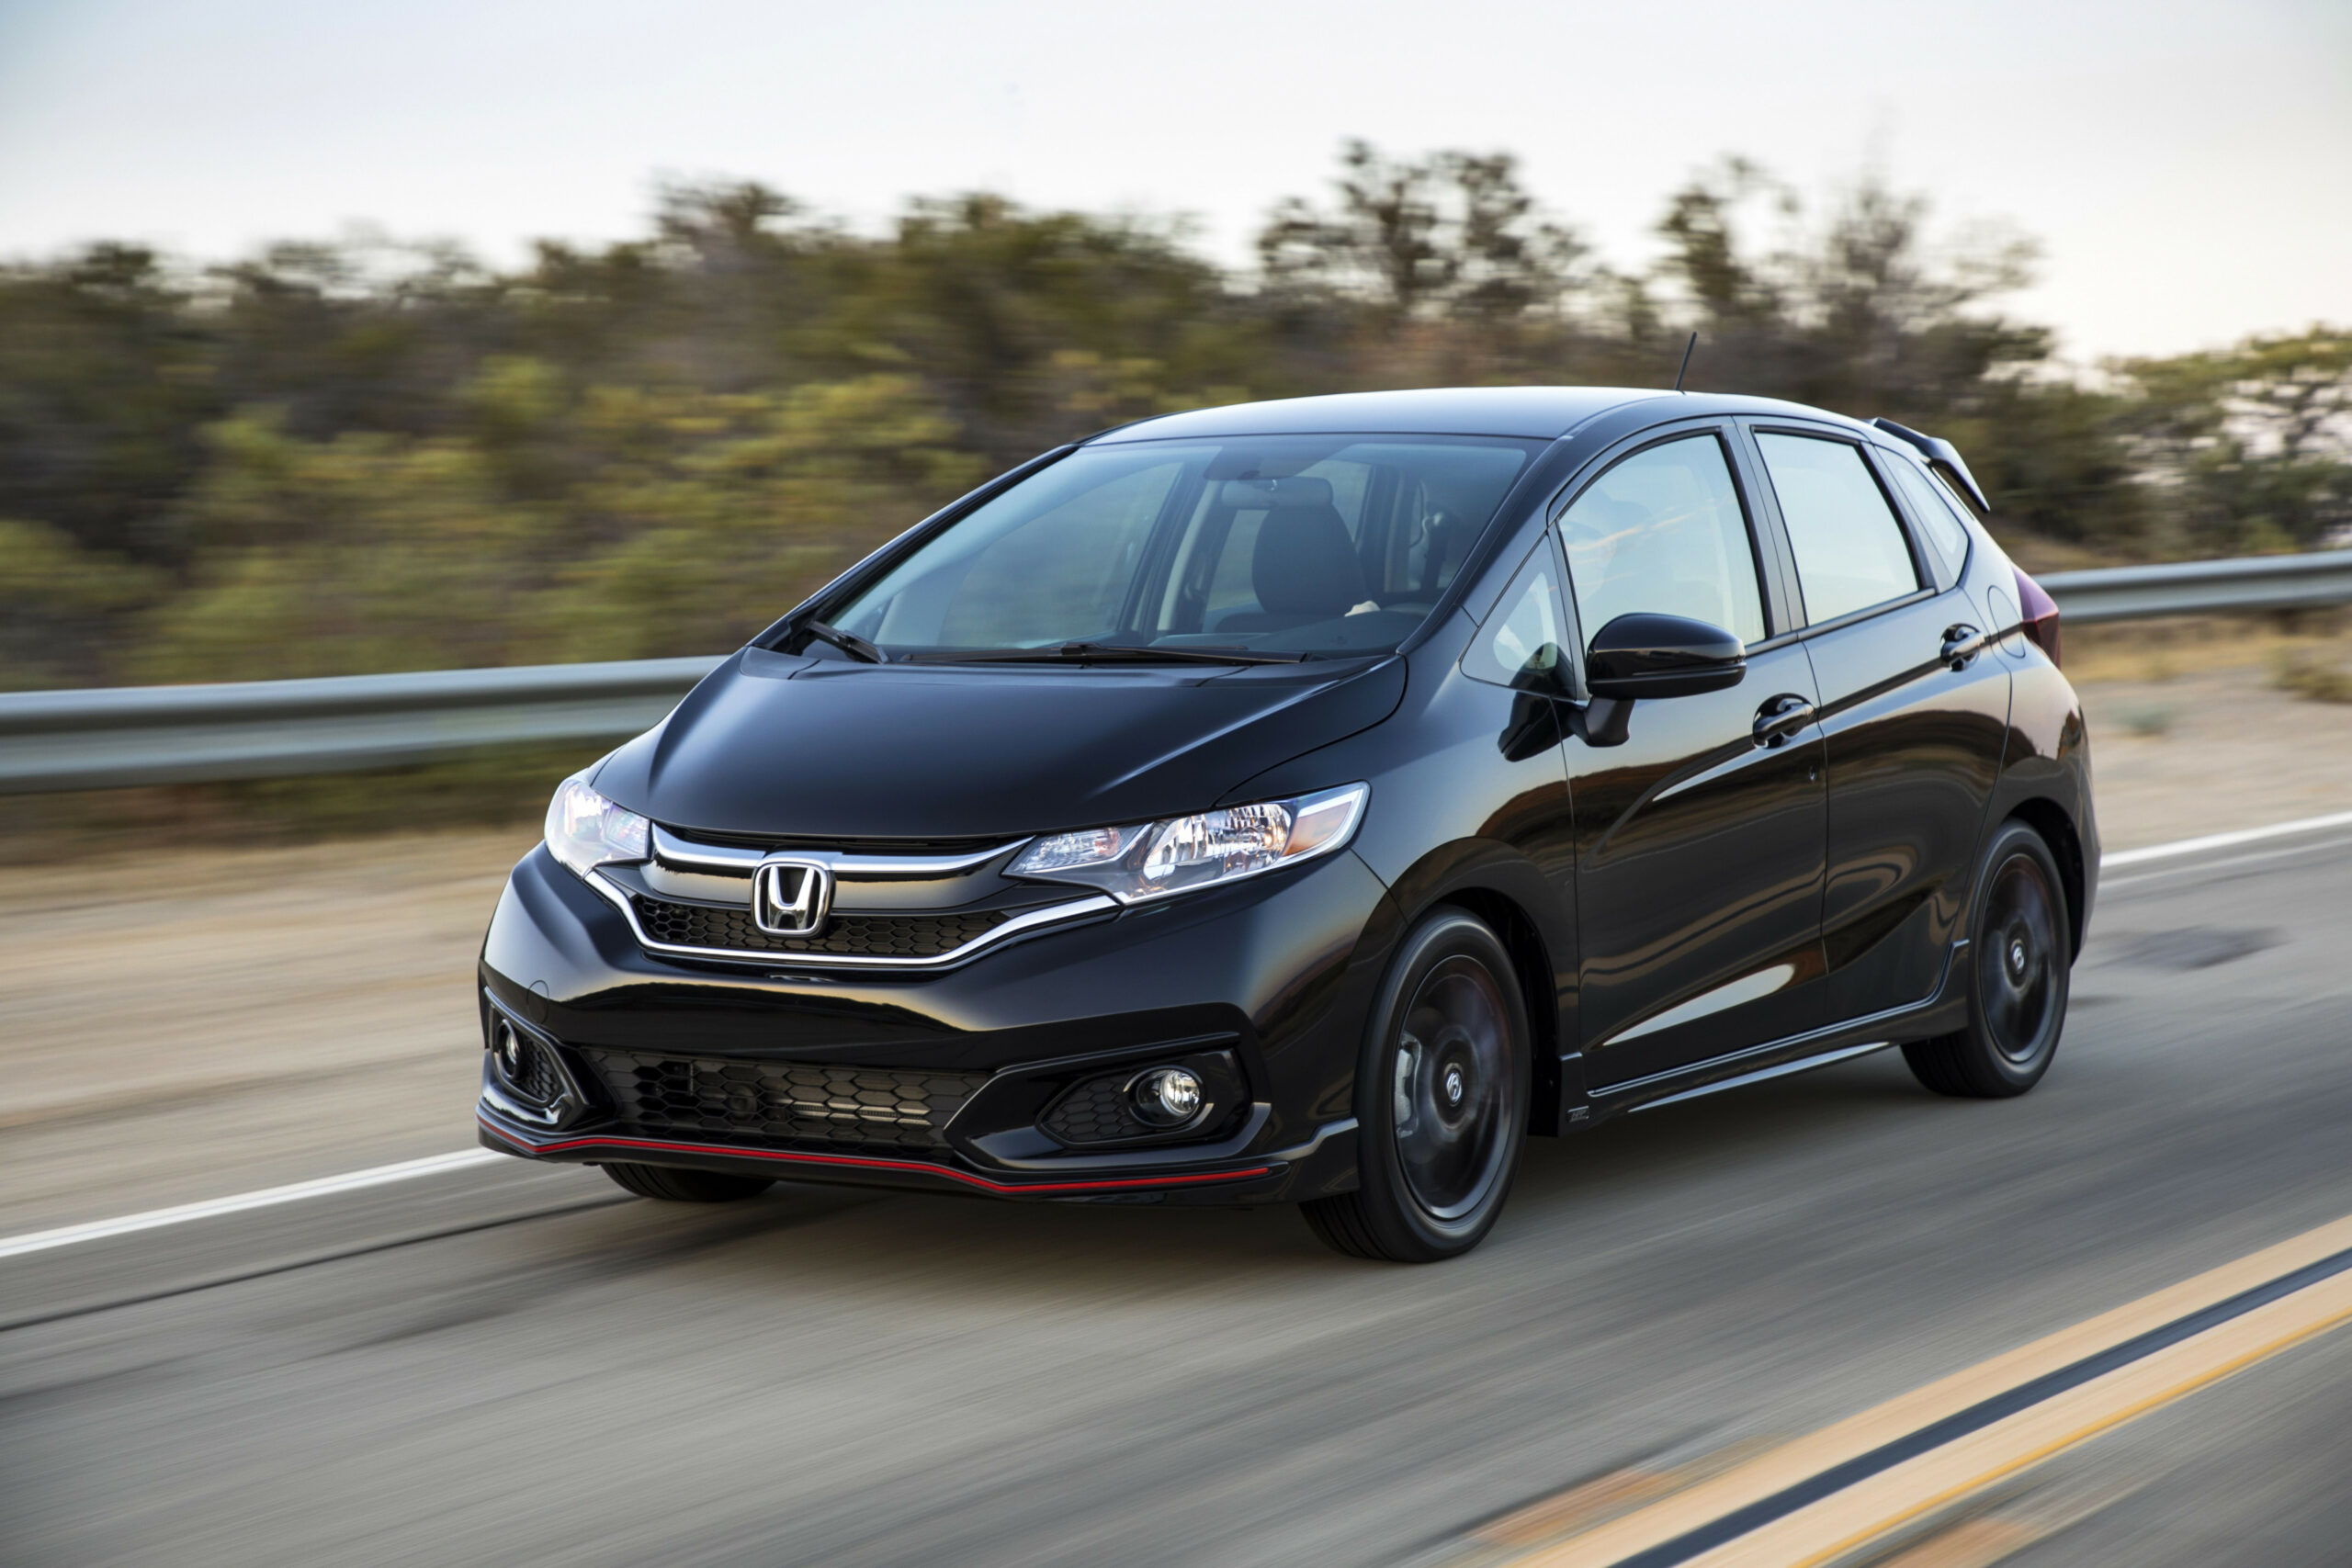 6 Honda Fit Review, Pricing, and Specs - honda fit 2020 price